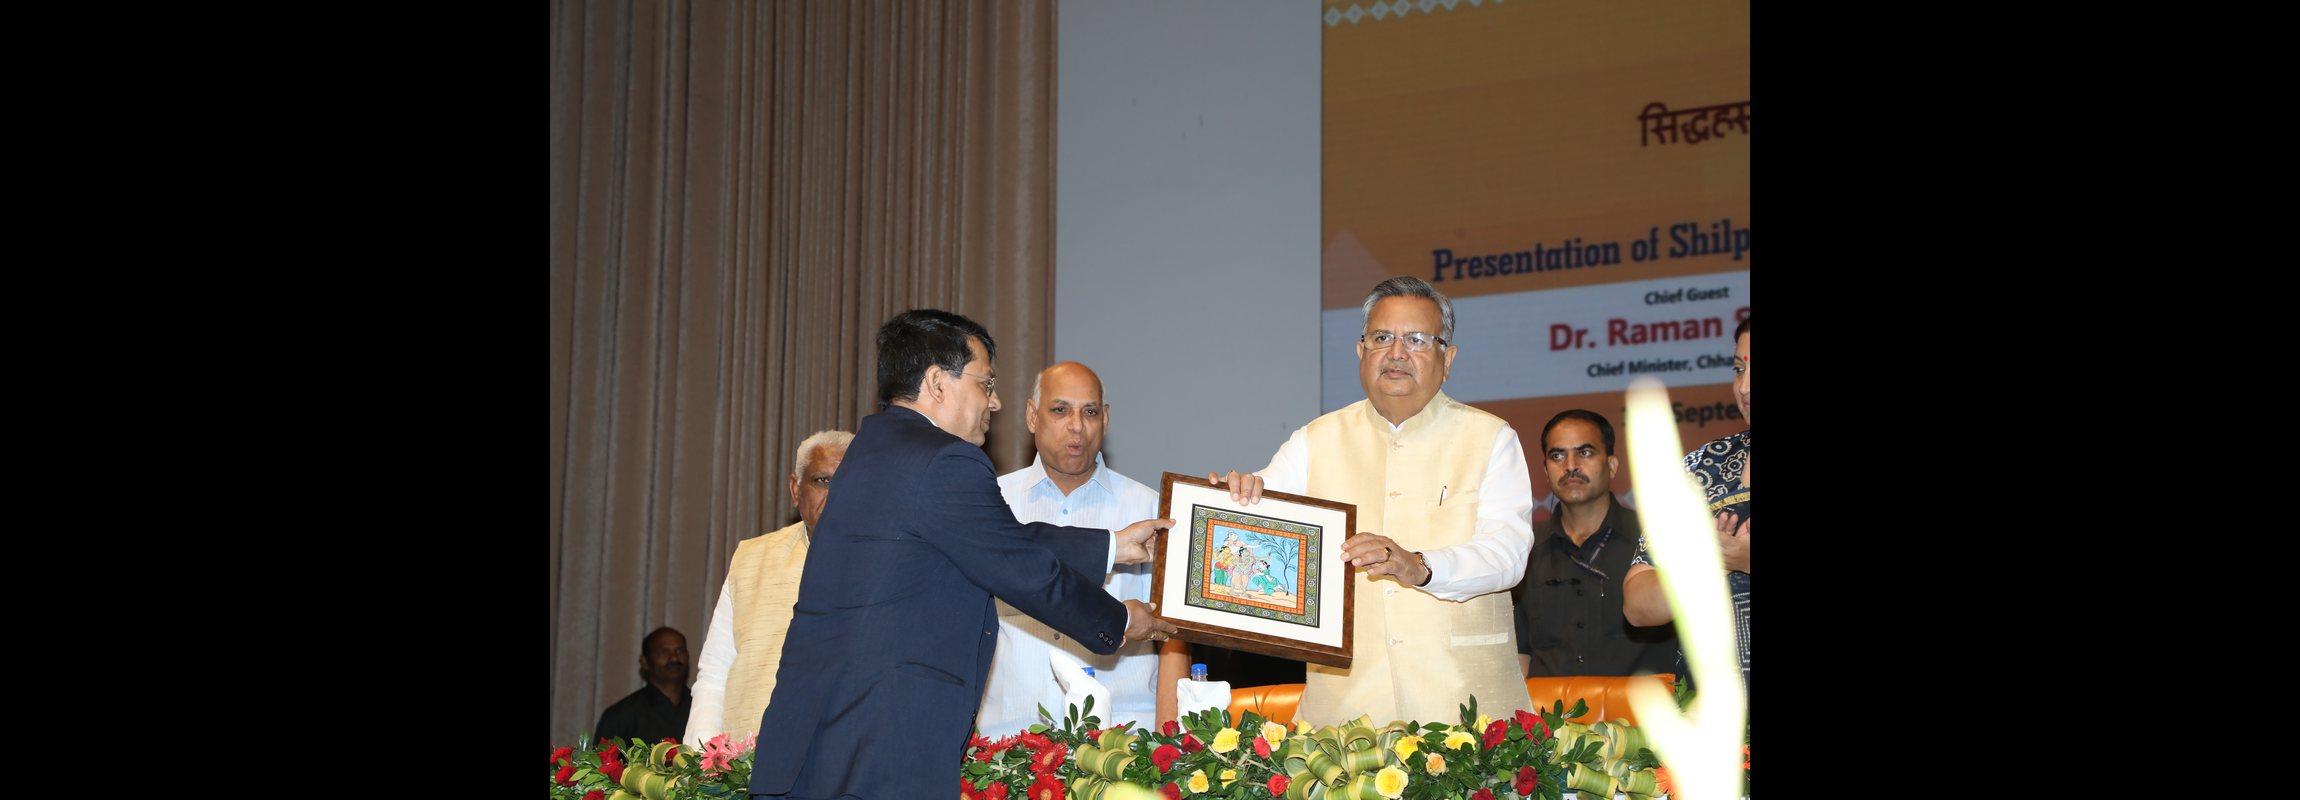 image of Presentation of Shilp Guru And National Award to Master Craftpersons for the year 2016